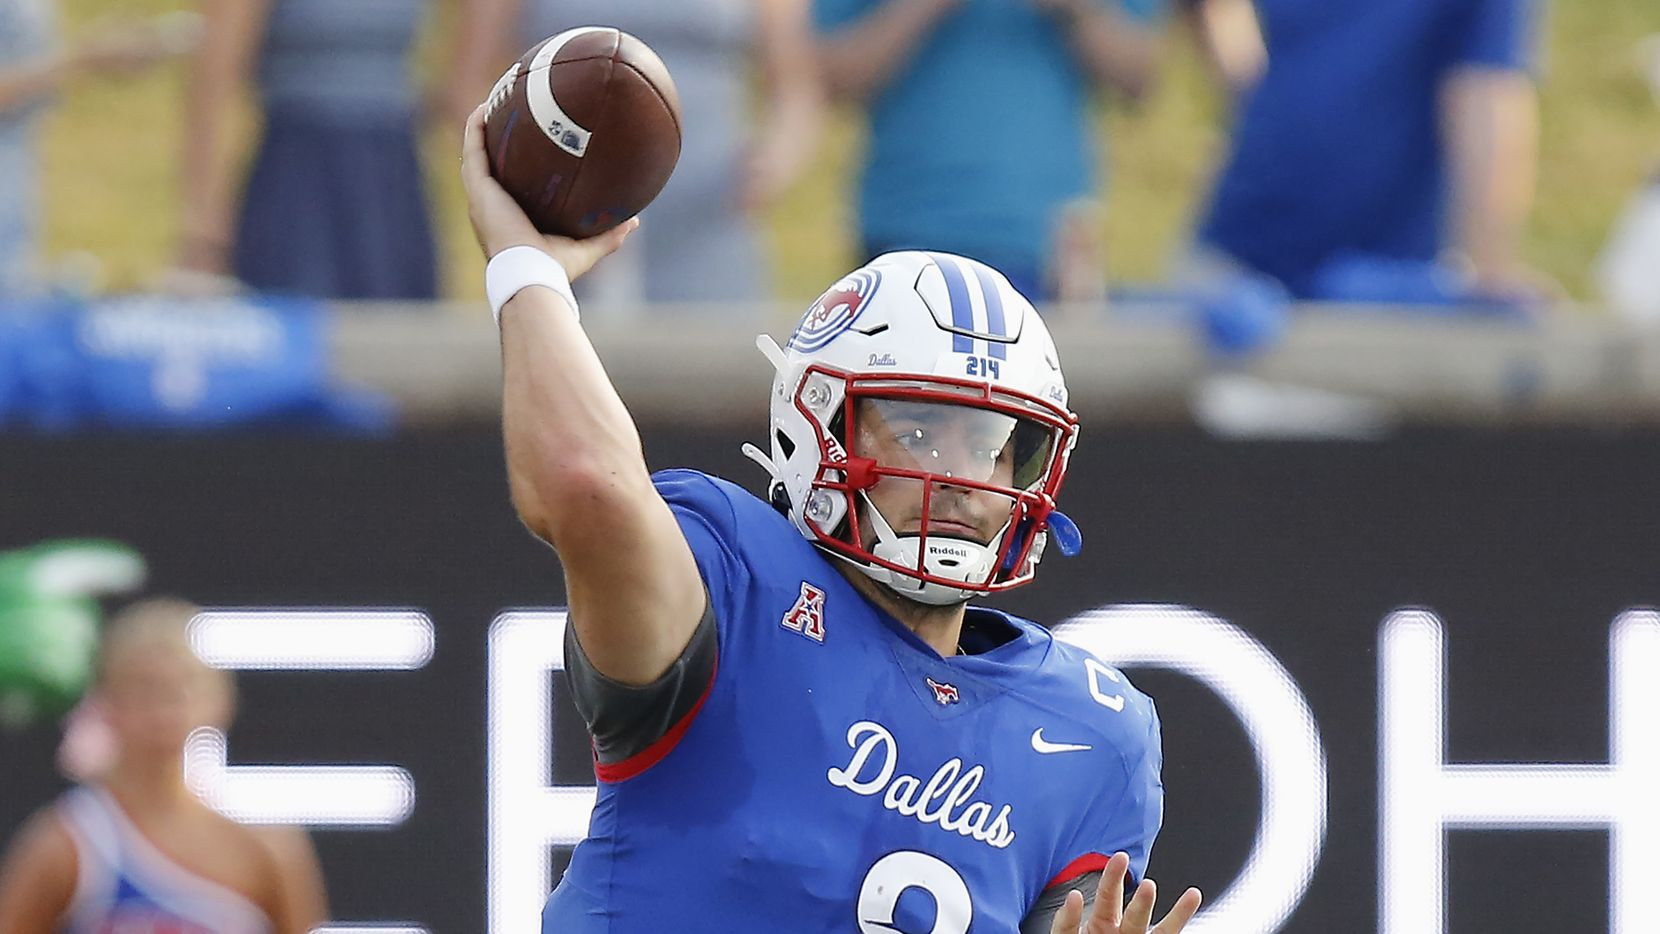 Southern Methodist Mustangs quarterback Tanner Mordecai (8) throws a pass during the first half as SMU hosted UNT at Ford Stadium in Dallas on Saturday, September 11, 2021.